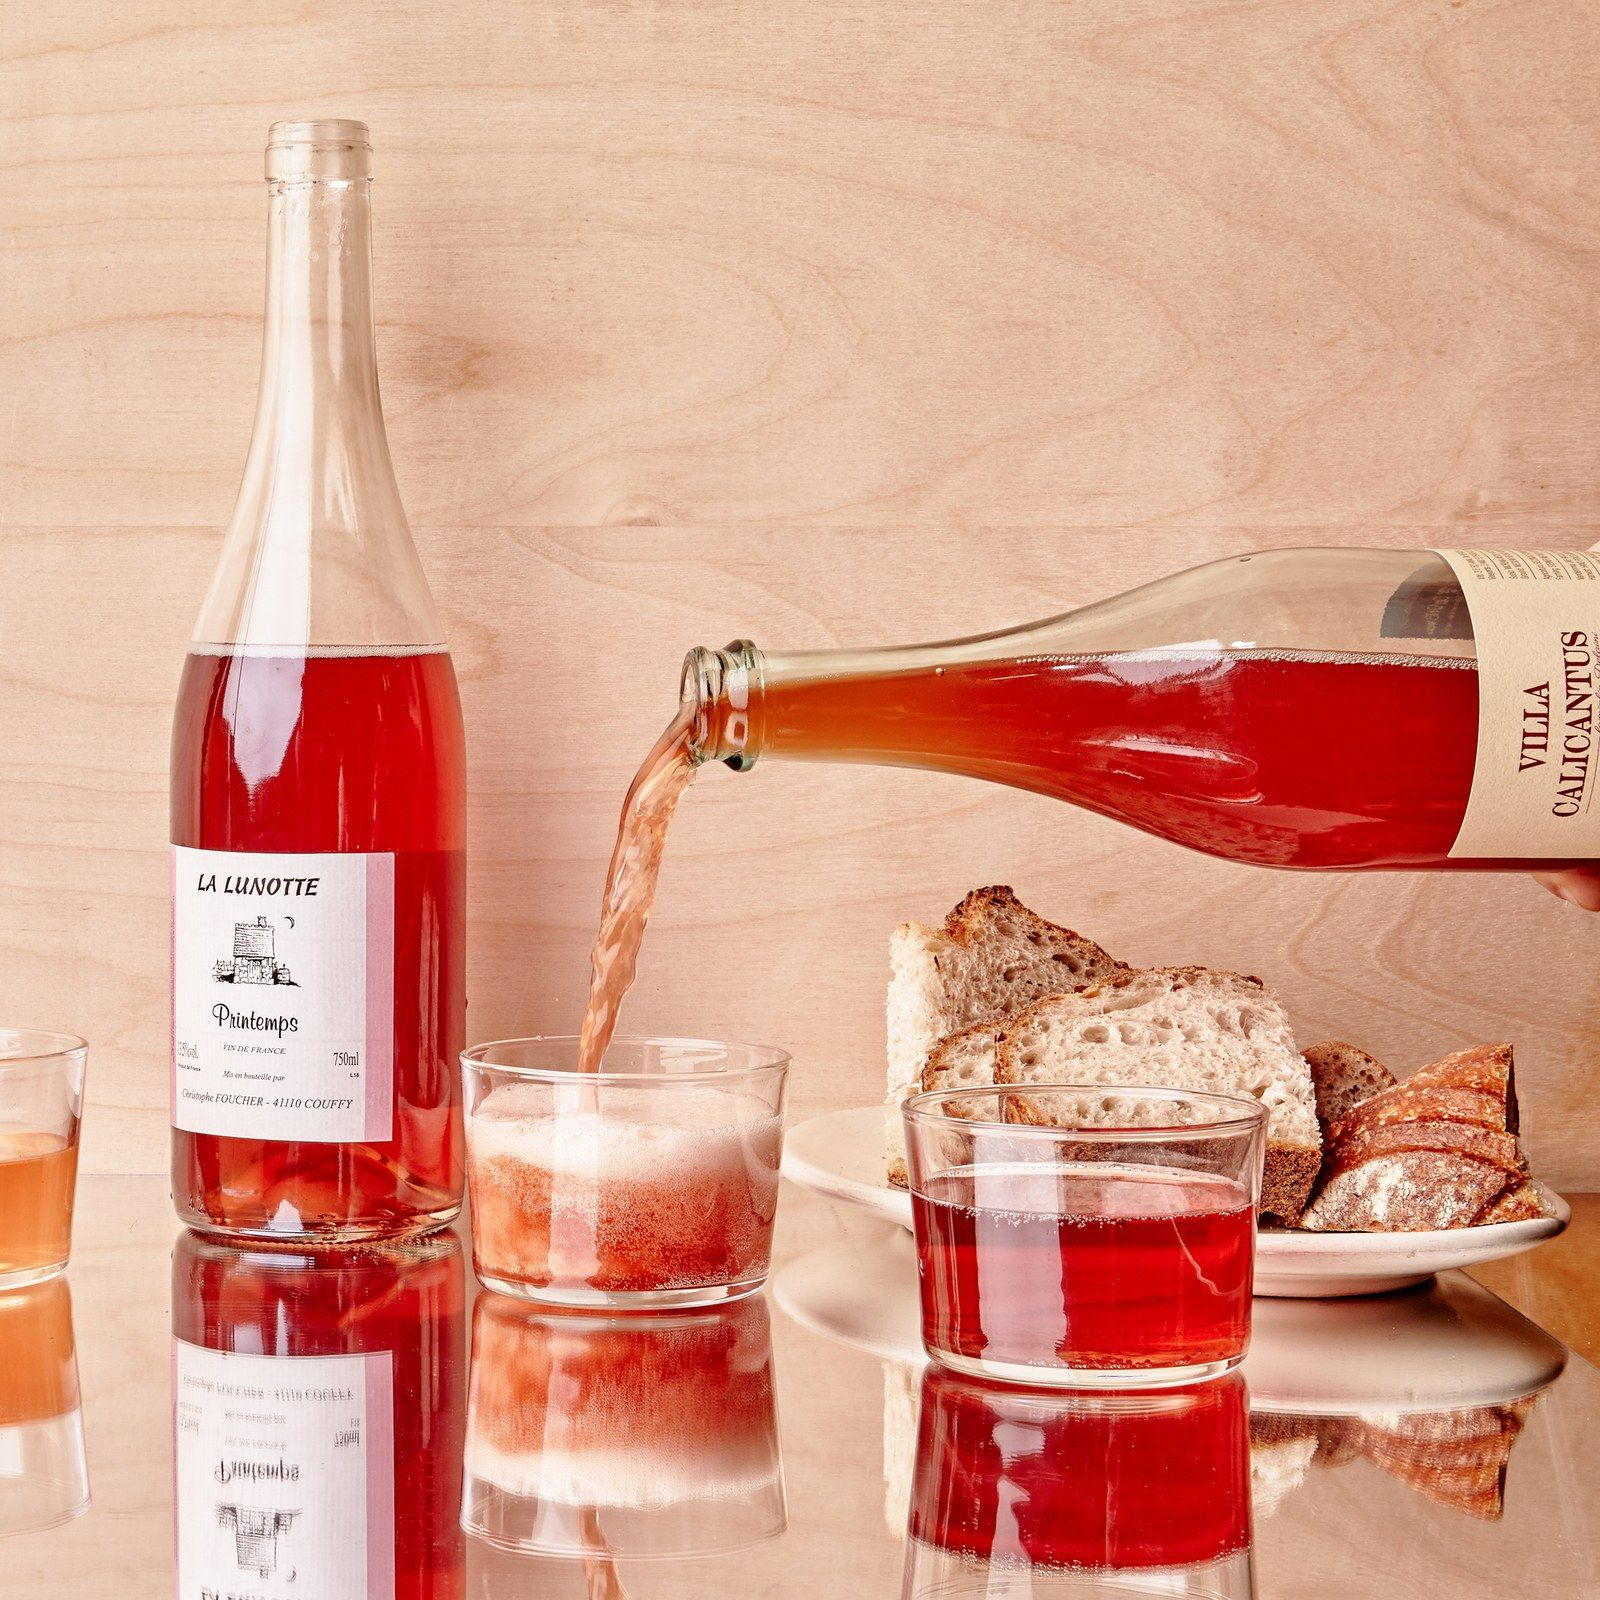 Just So You Know Rose Season Is Actually Right Now In 2020 Just So You Know Winter Rose Wine Bottle